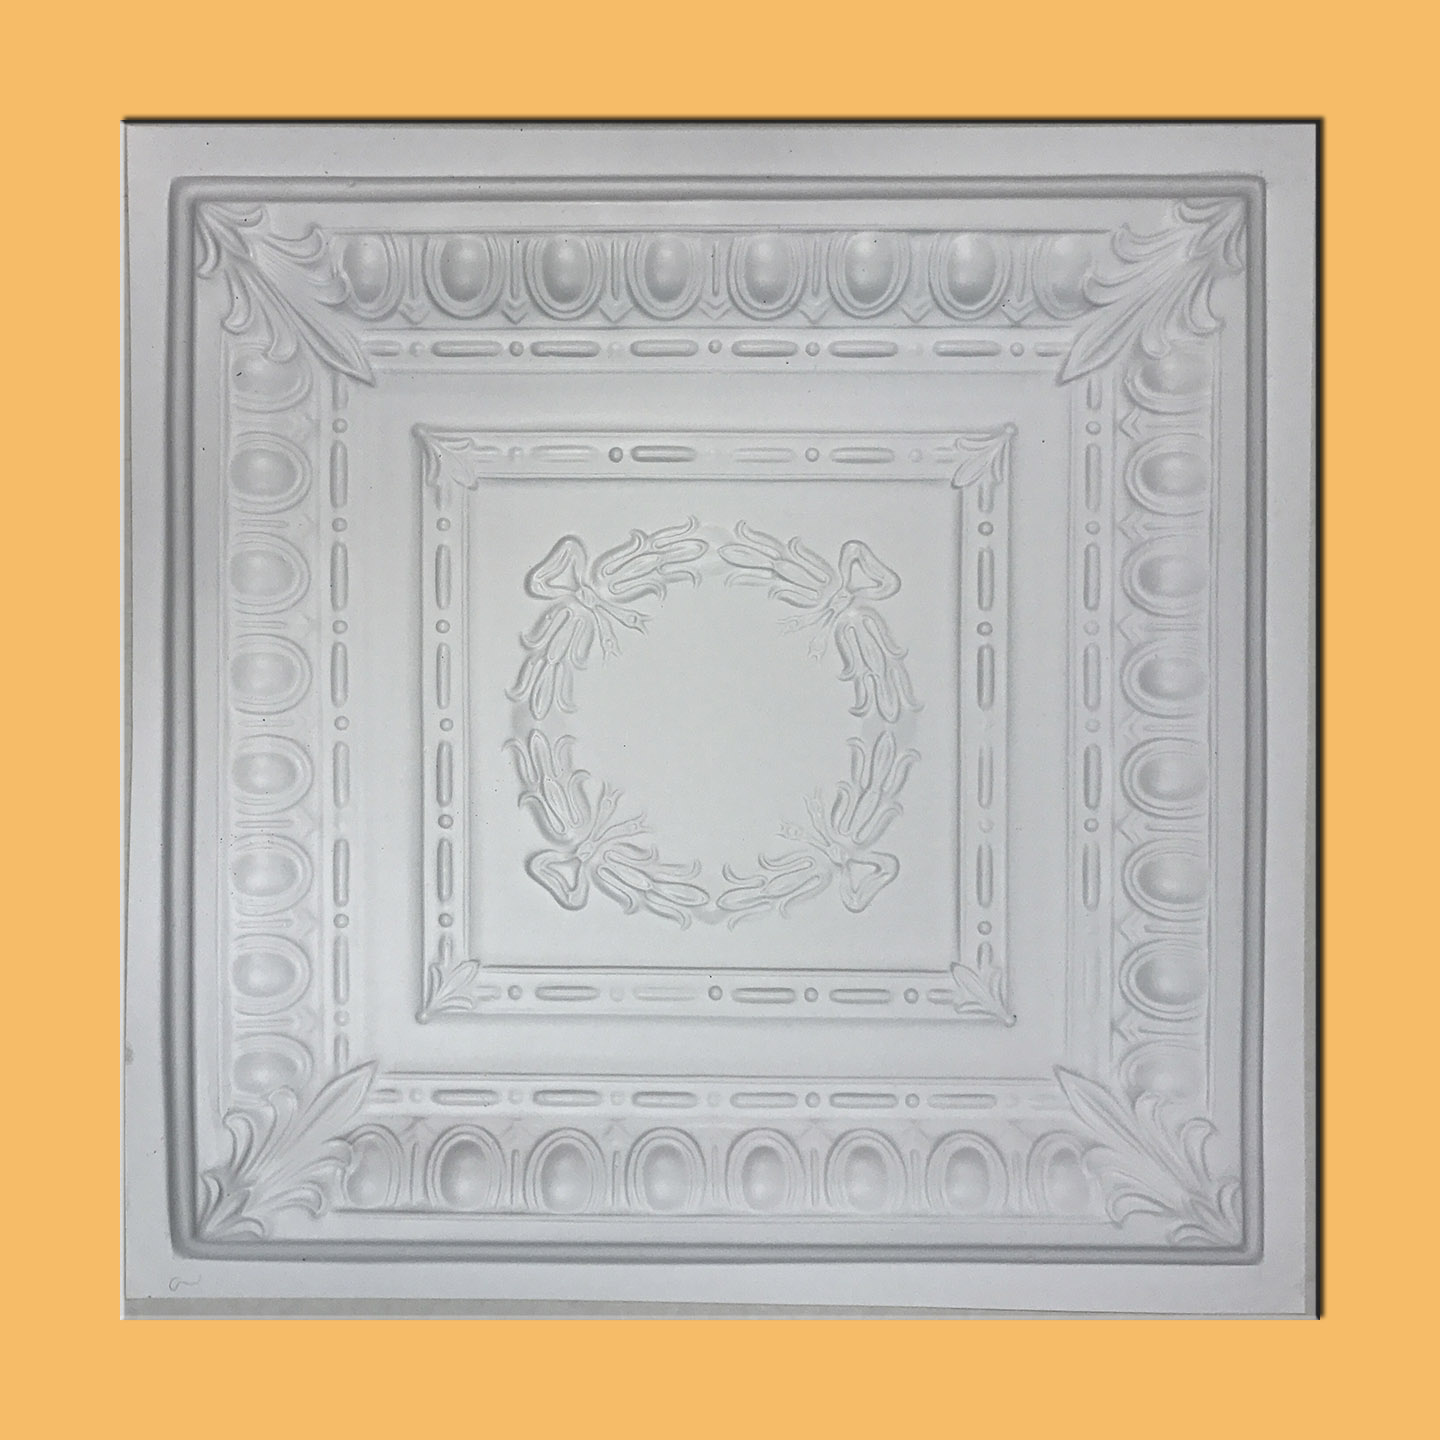 Pvc Ceiling Tiles : Pvc ceiling tiles ceilling antique copper